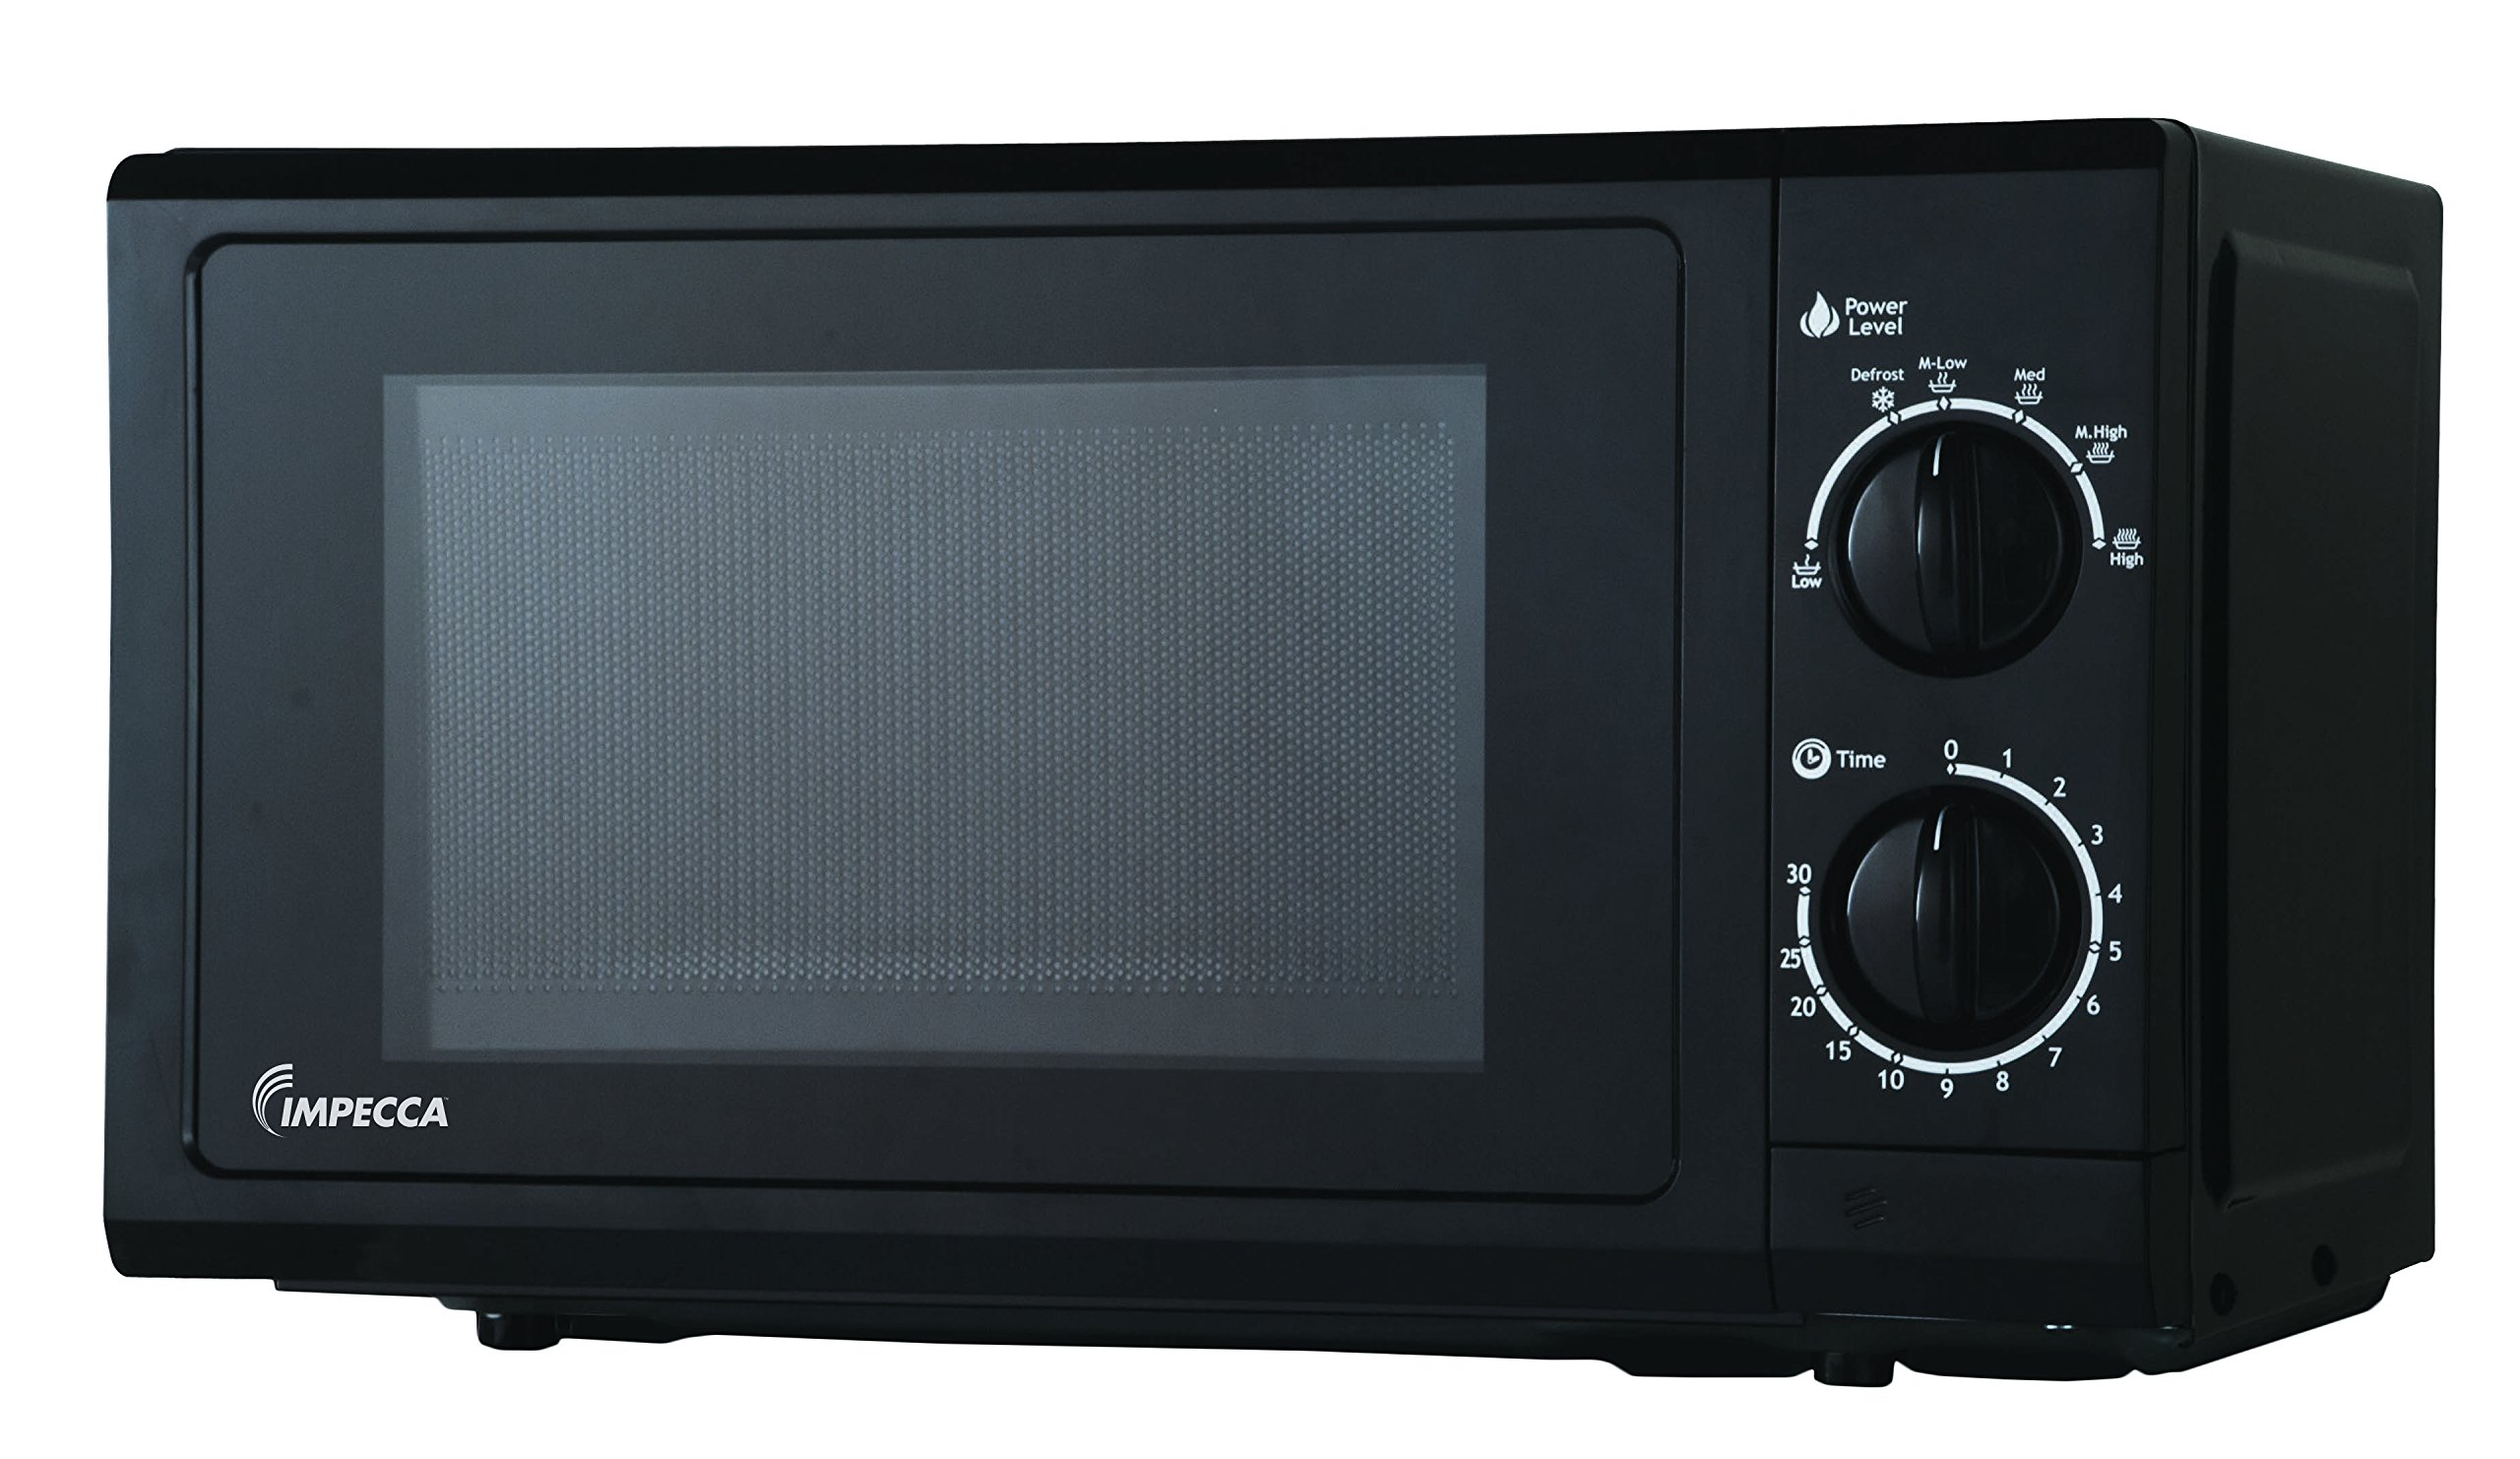 Impecca CM0674 700-Watts Countertop Microwave Oven, 120V 0.6 Cubic Feet, Black